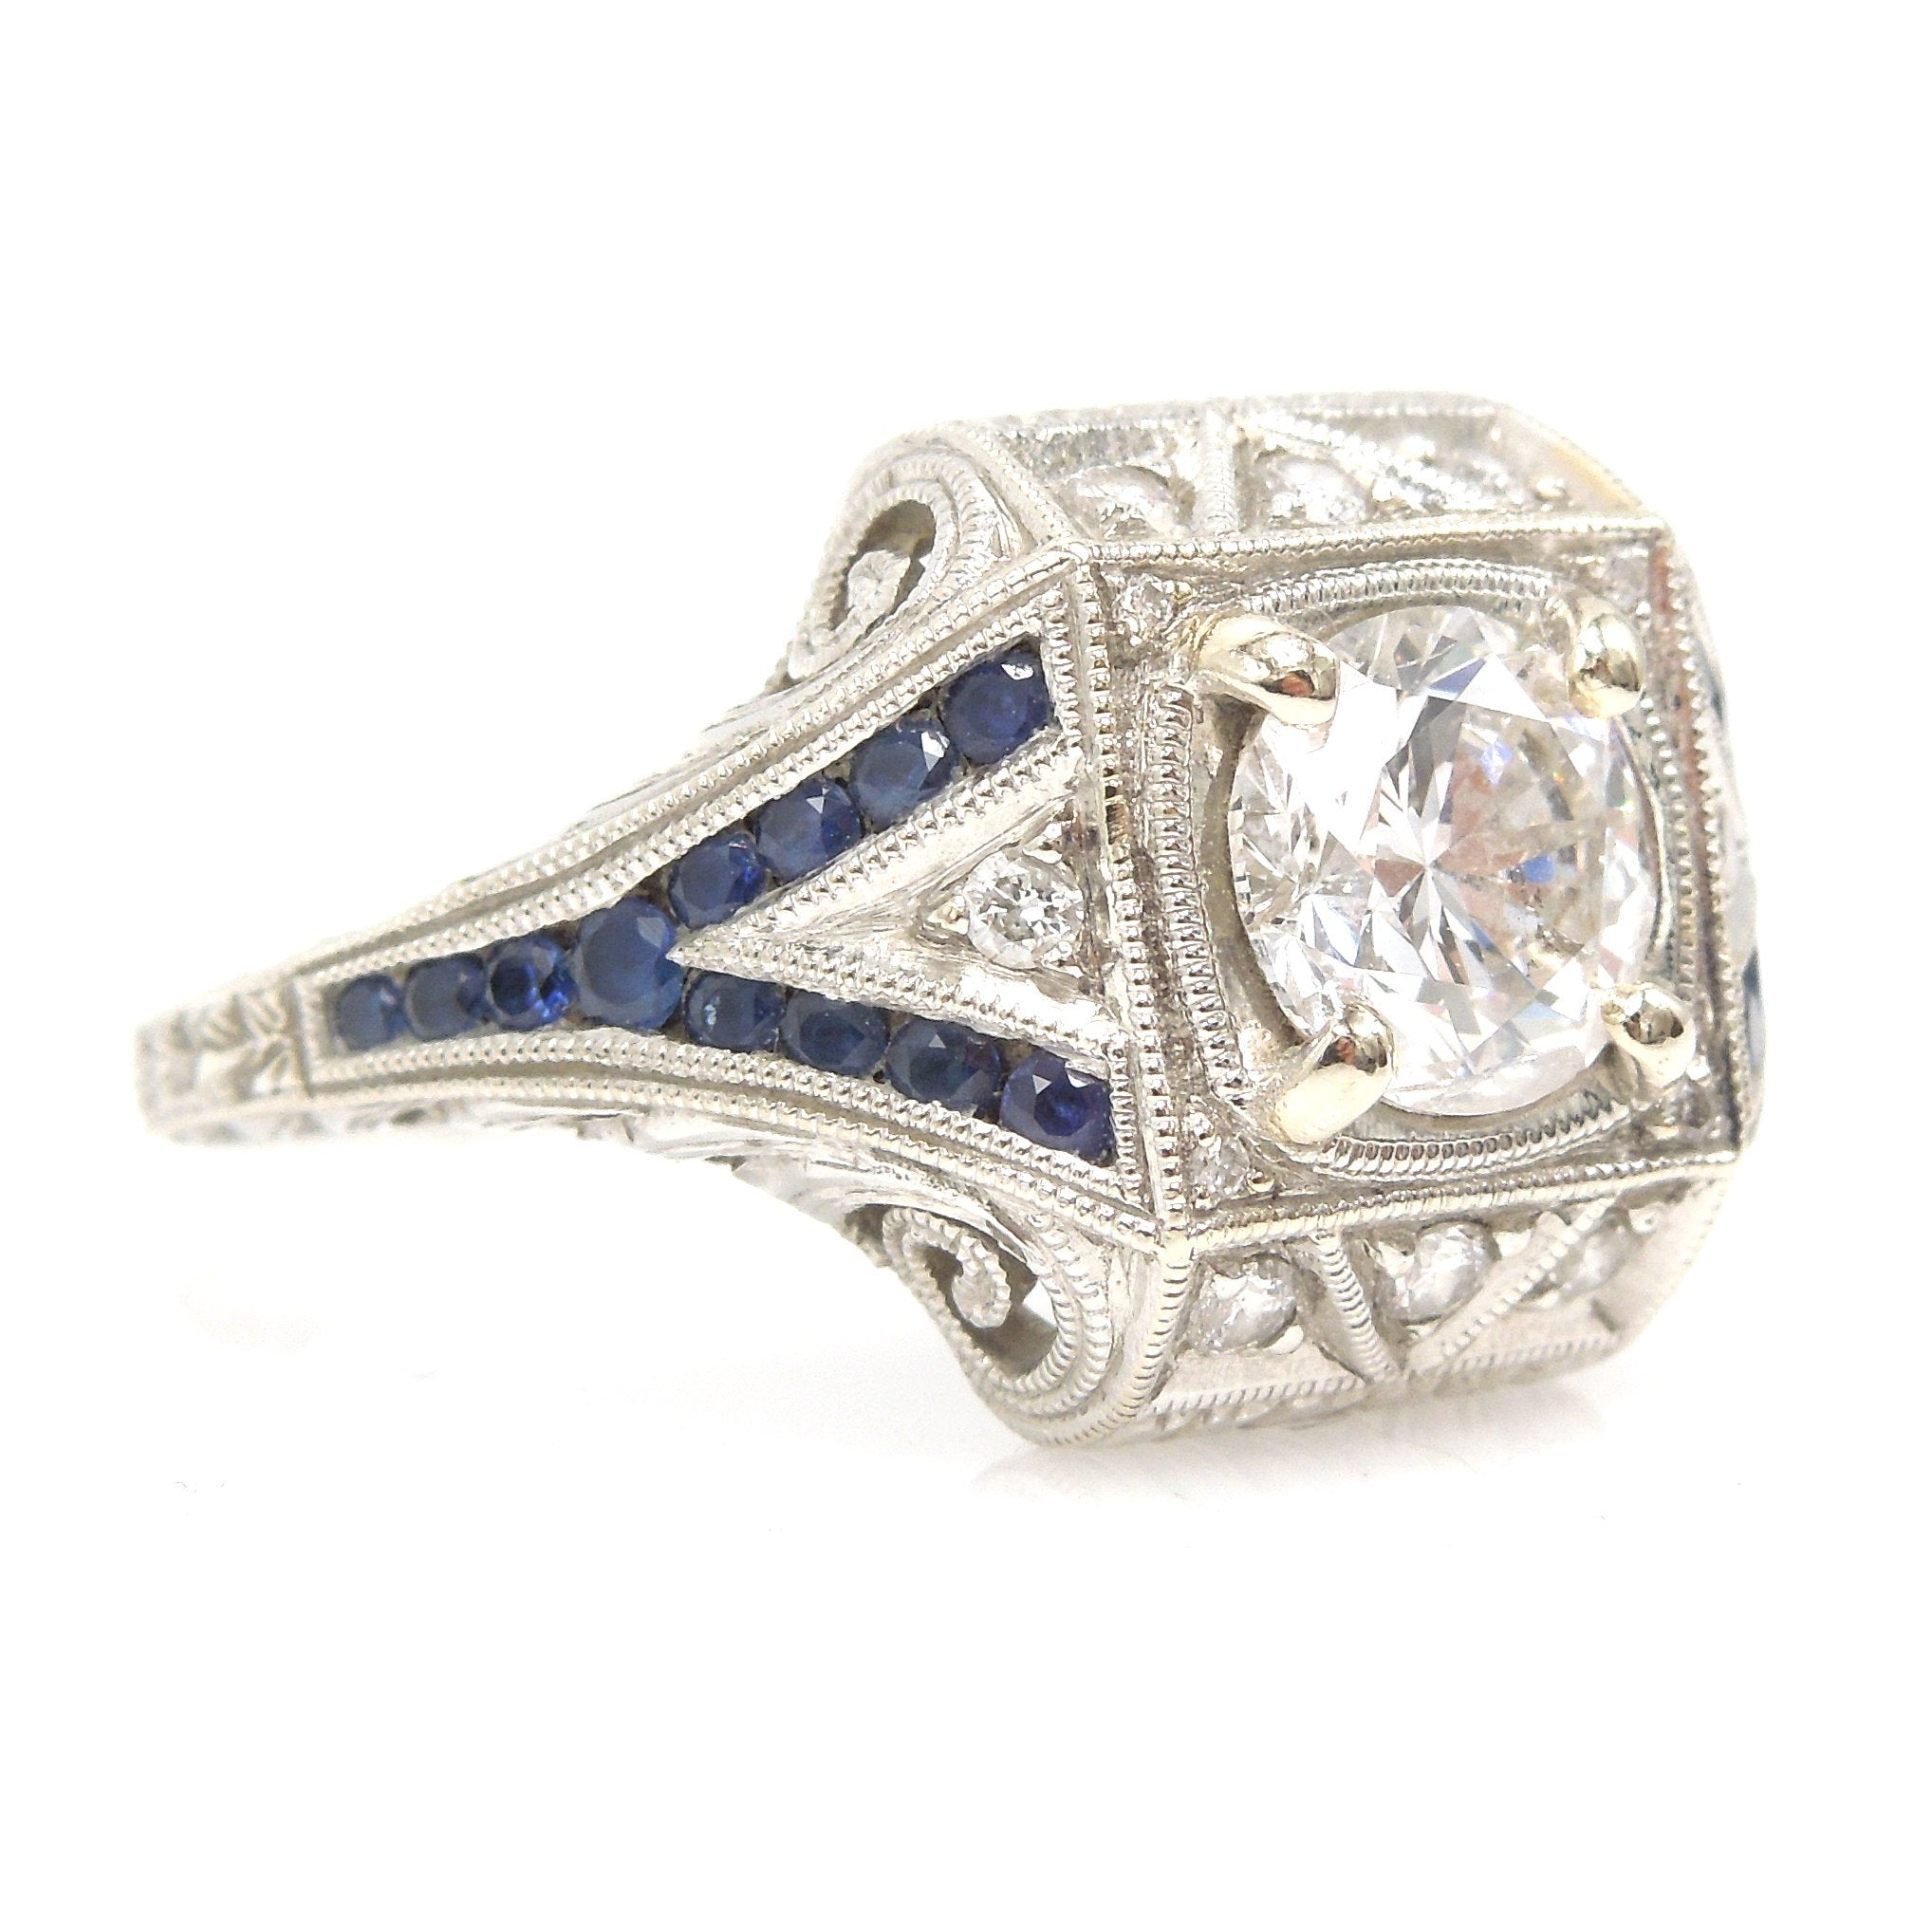 Art Deco Style 1.40ct Diamond Engagement Ring with Sapphire Accents in 14K White Gold